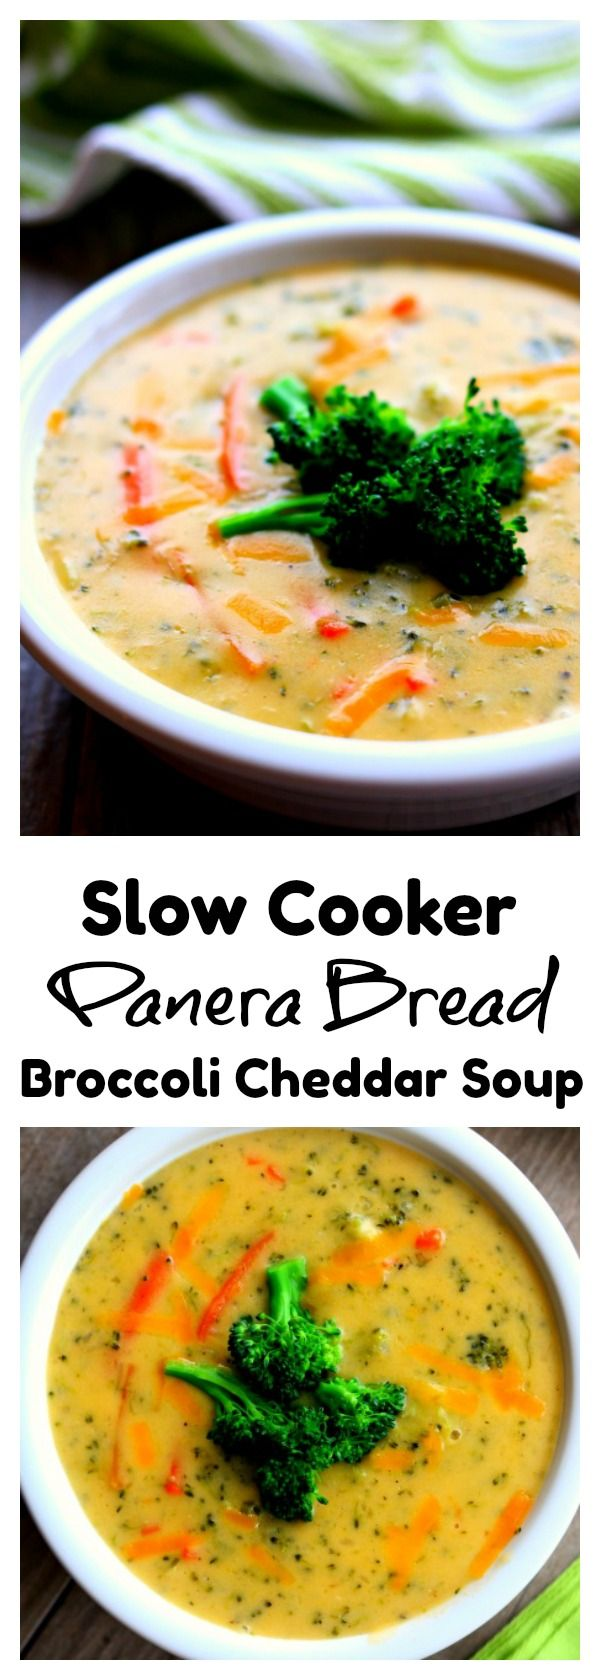 Slow Cooker Panera Broccoli Cheddar Soup–reminiscent of Panera Bread's broccoli cheddar soup this slow cooker version has chopped broccoli, shredded carrots and celery simmered in a velvety smooth cheese sauce. I believe this version is just as good or better than you could order at any restaurant! Try it for dinner this week. #crockpot #copycatrecipe #slowcooker